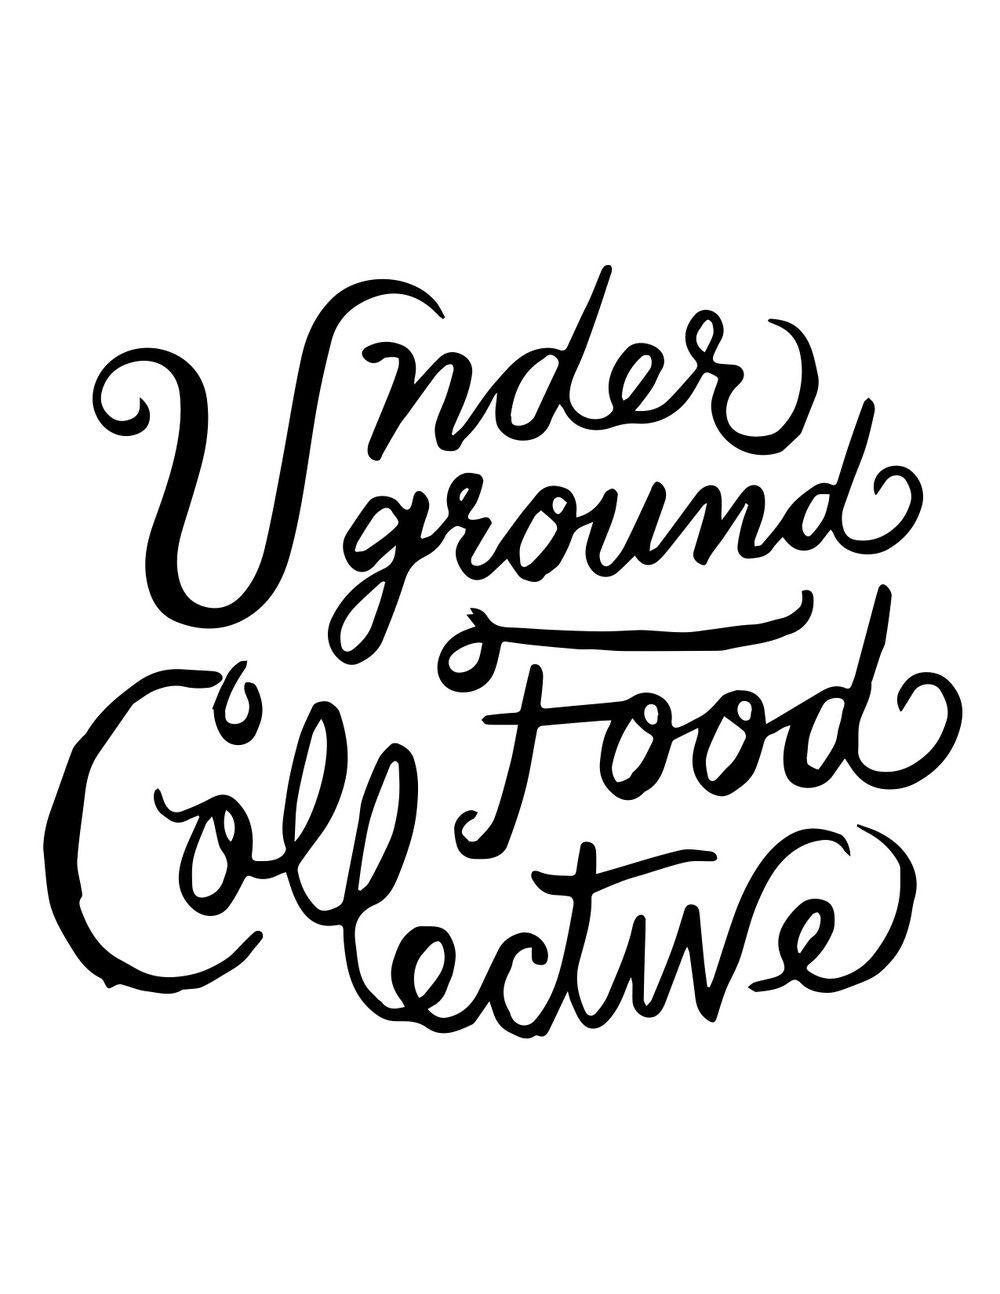 Underground Food Collective Catering